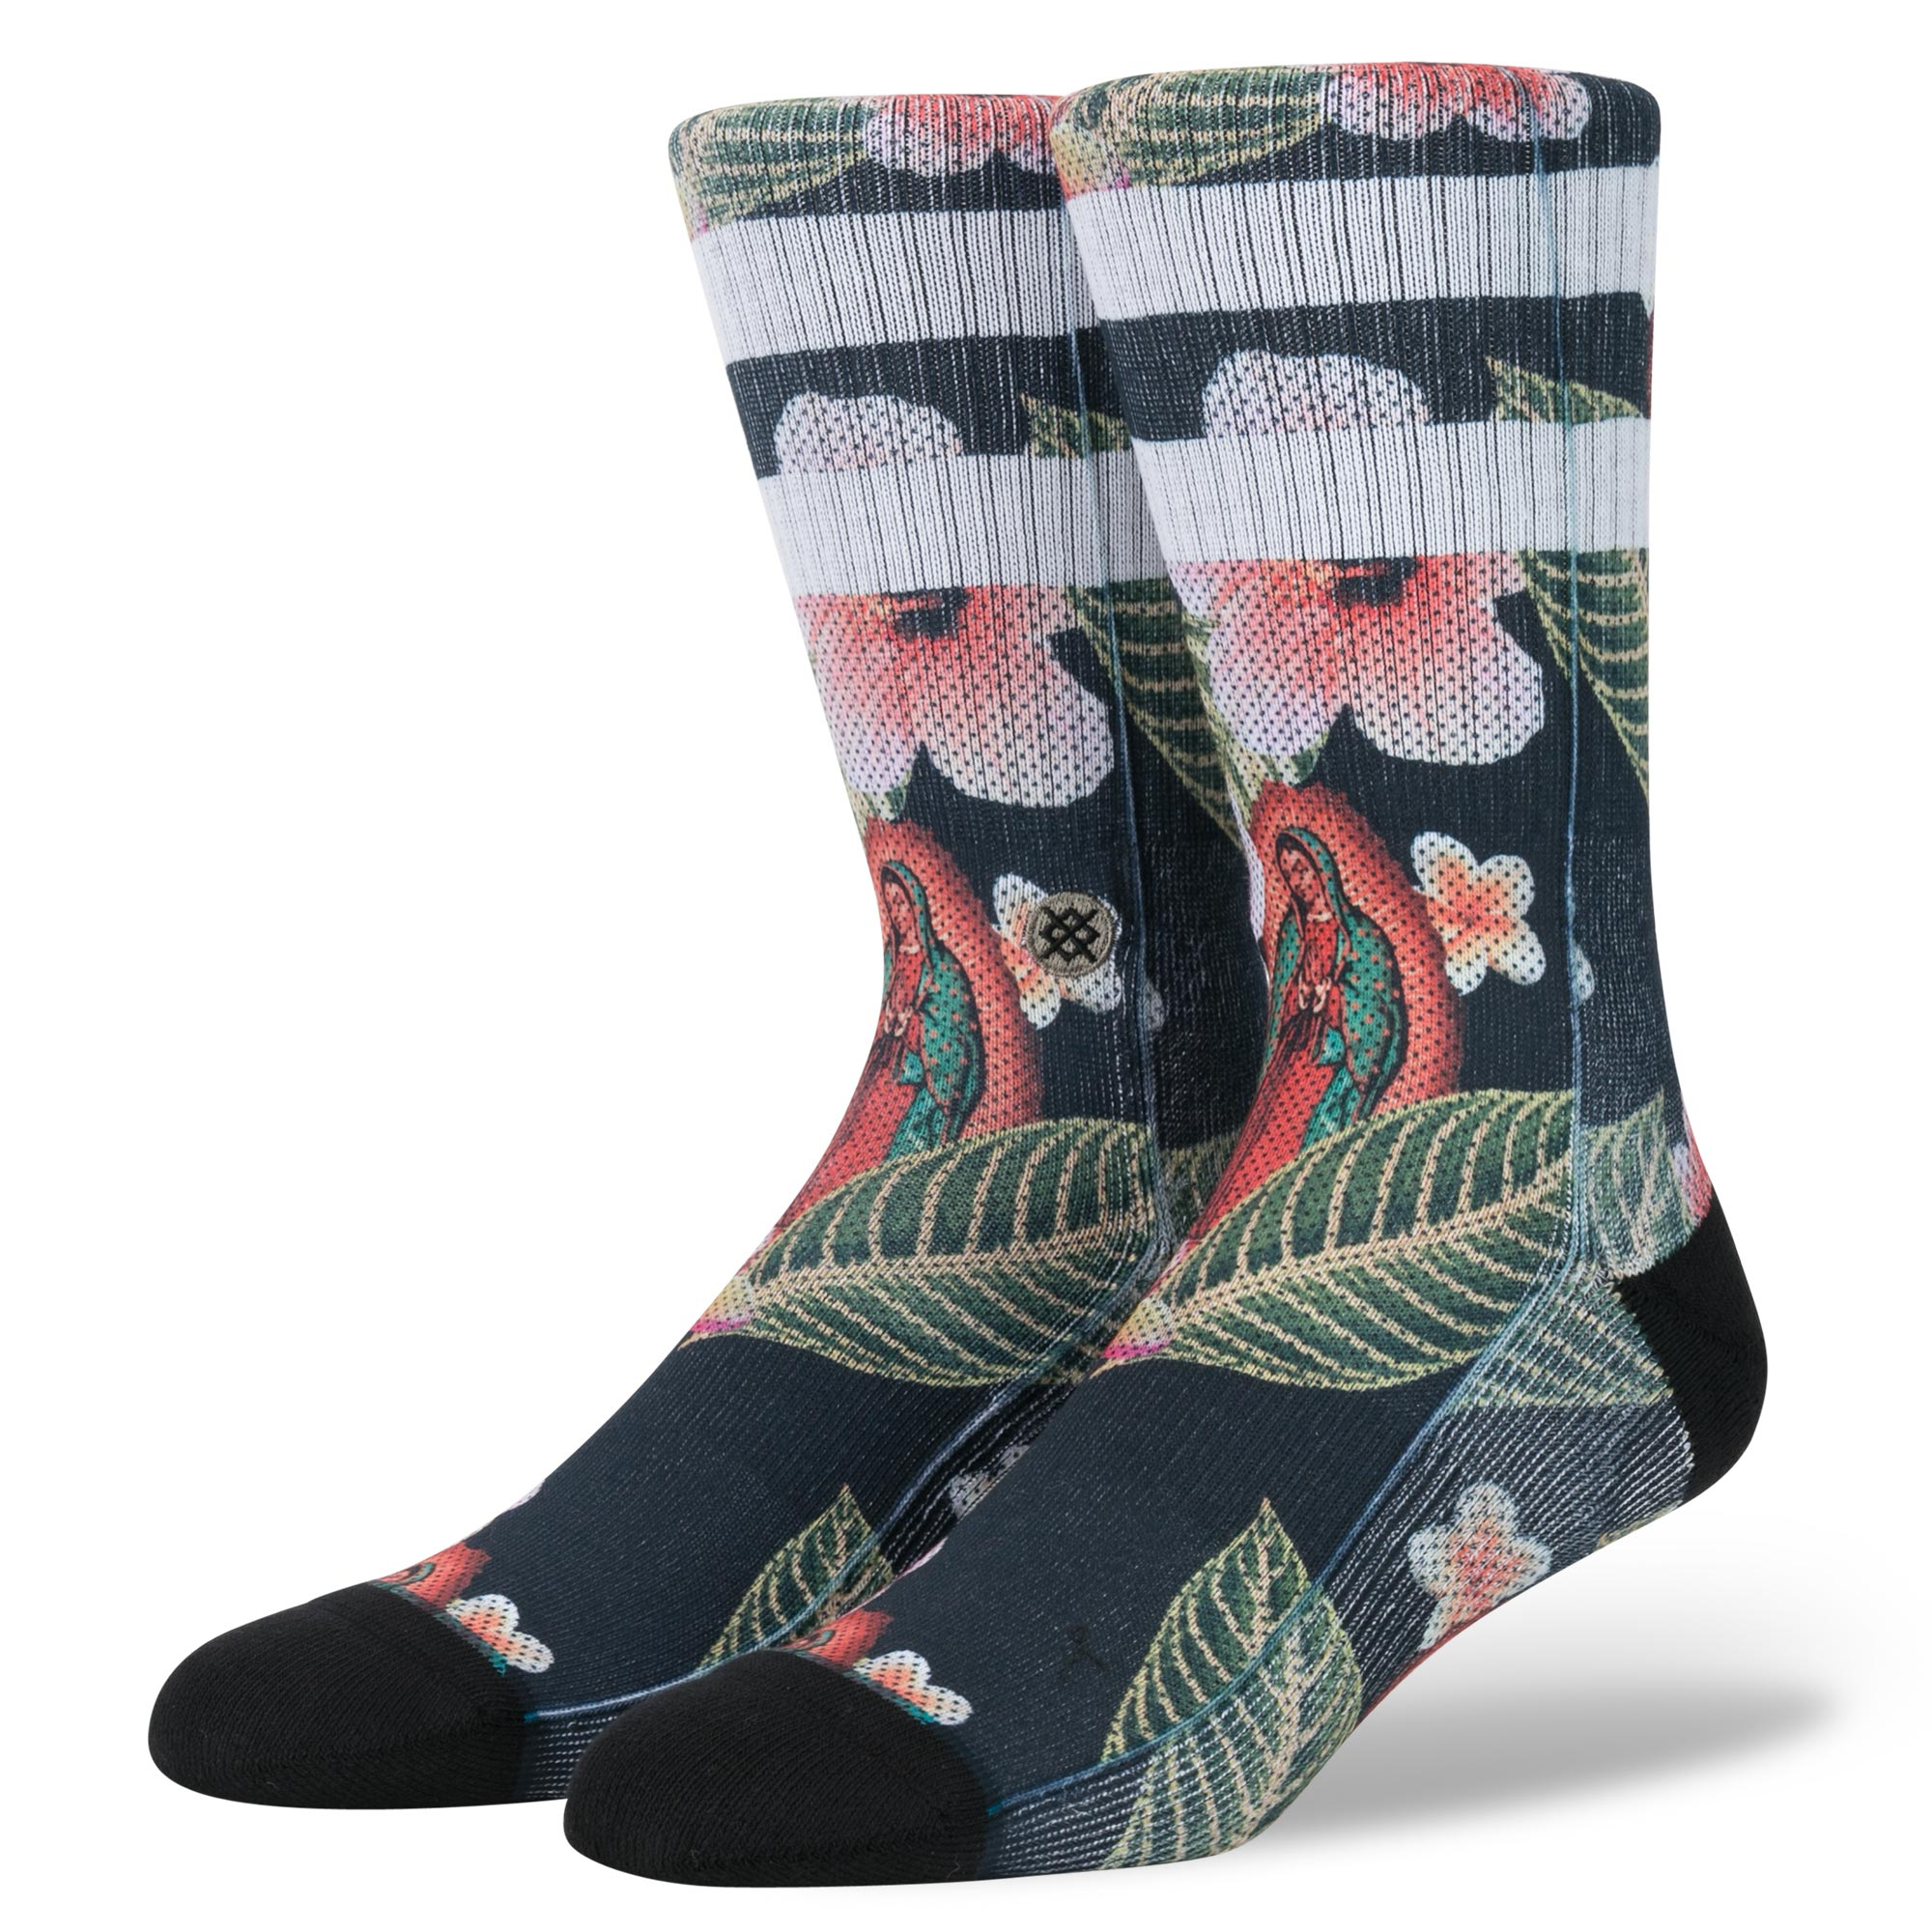 Image of Stance Socks Madre De Aloha